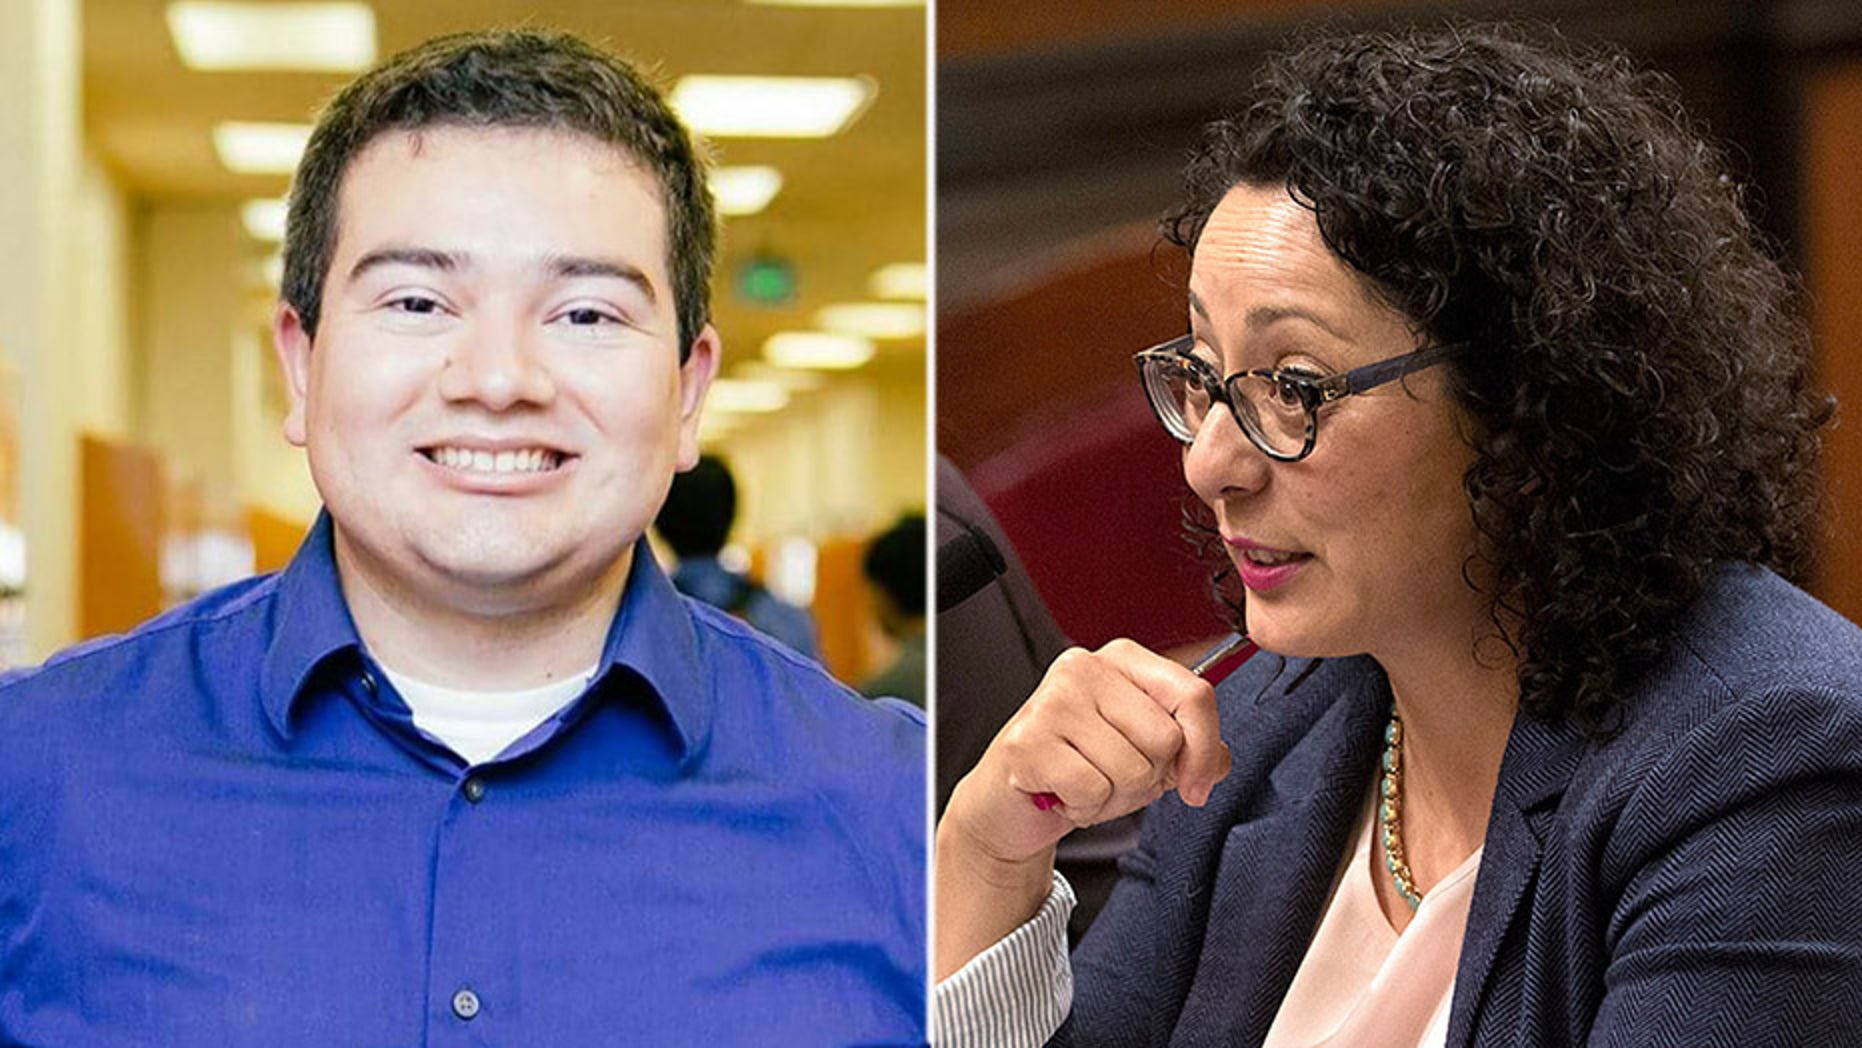 California Assemblywoman Cristina Garcia (right), who was once at the forefront of the state's #MeToo movement, was cleared Thursday of allegations that she groped Daniel Fierro (left), a male staff member, in 2014. (Facebook / The Associated Press)